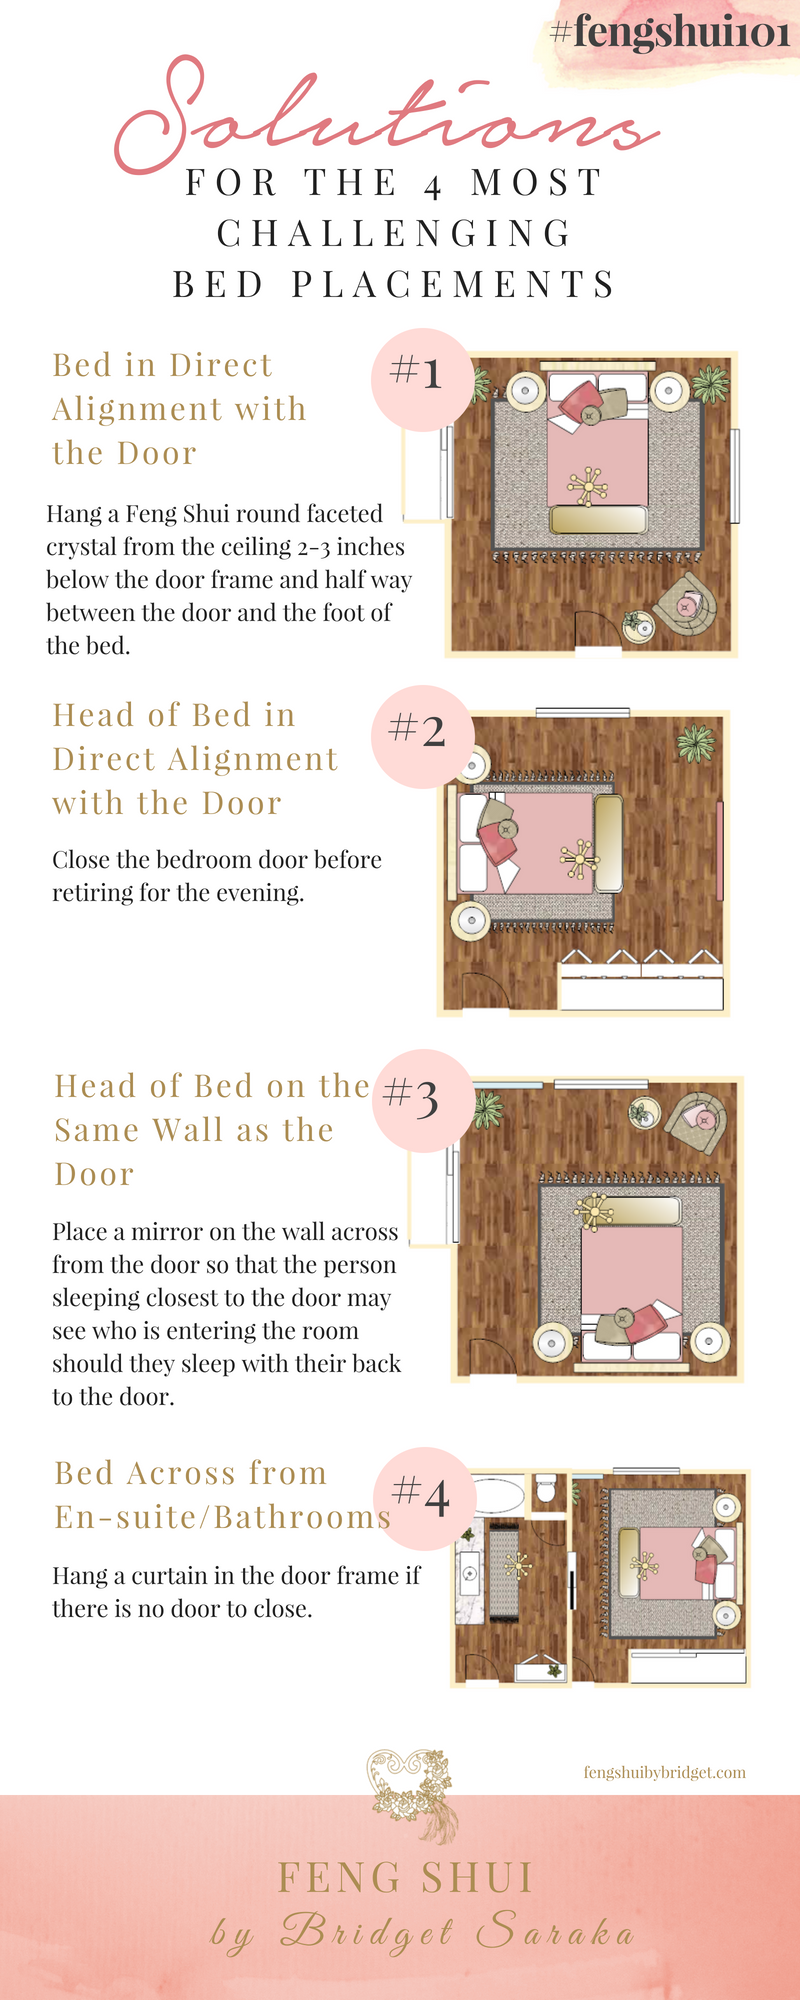 Solutions for the 11 Most Challenging Bed Placements - Feng Shui by